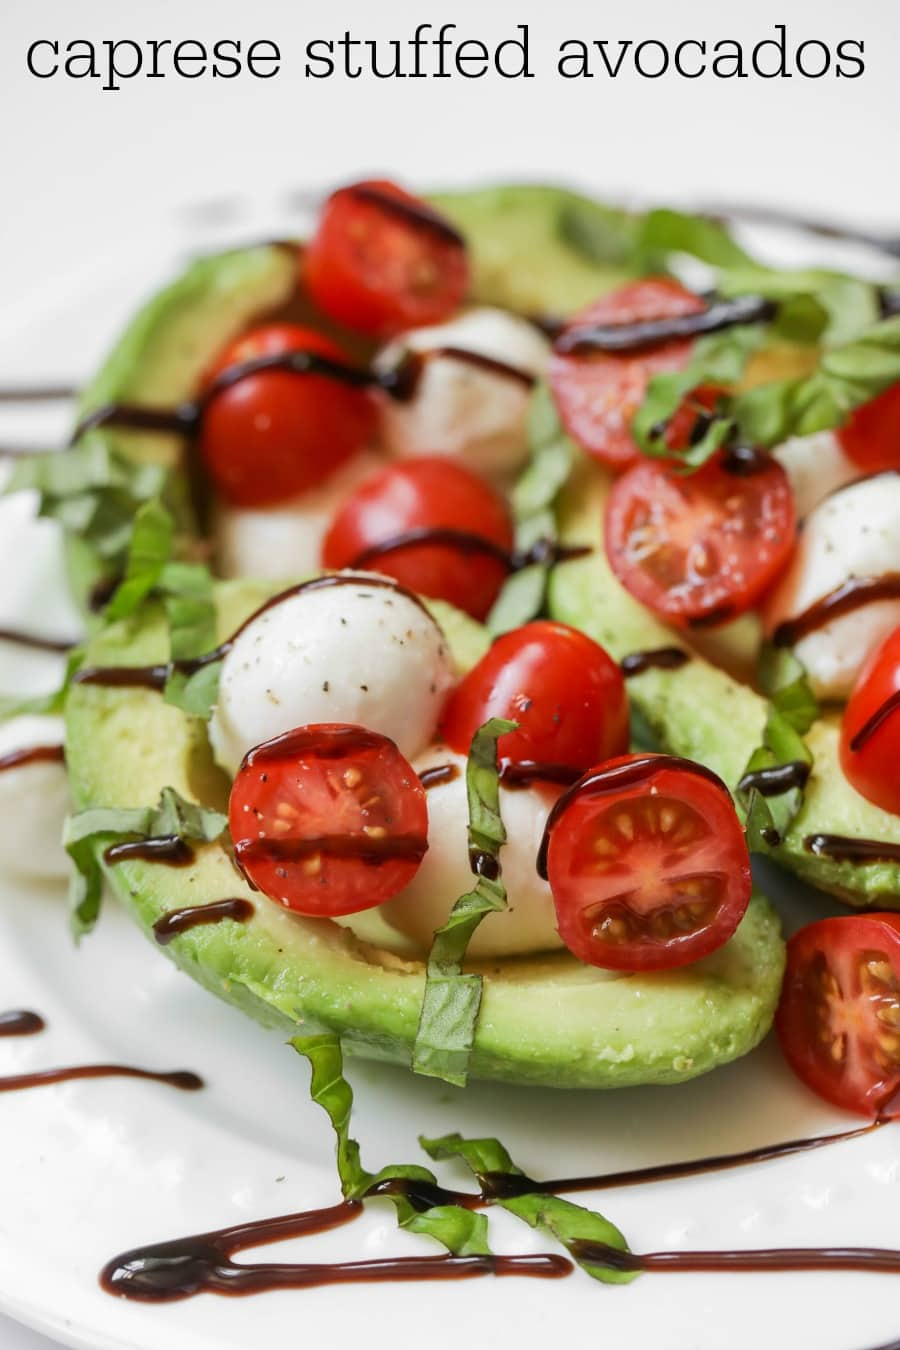 Caprese Stuffed Avocados - filled with Mozzarella, tomatoes, basil and balsamic glaze providing a great side/salad to any meal.